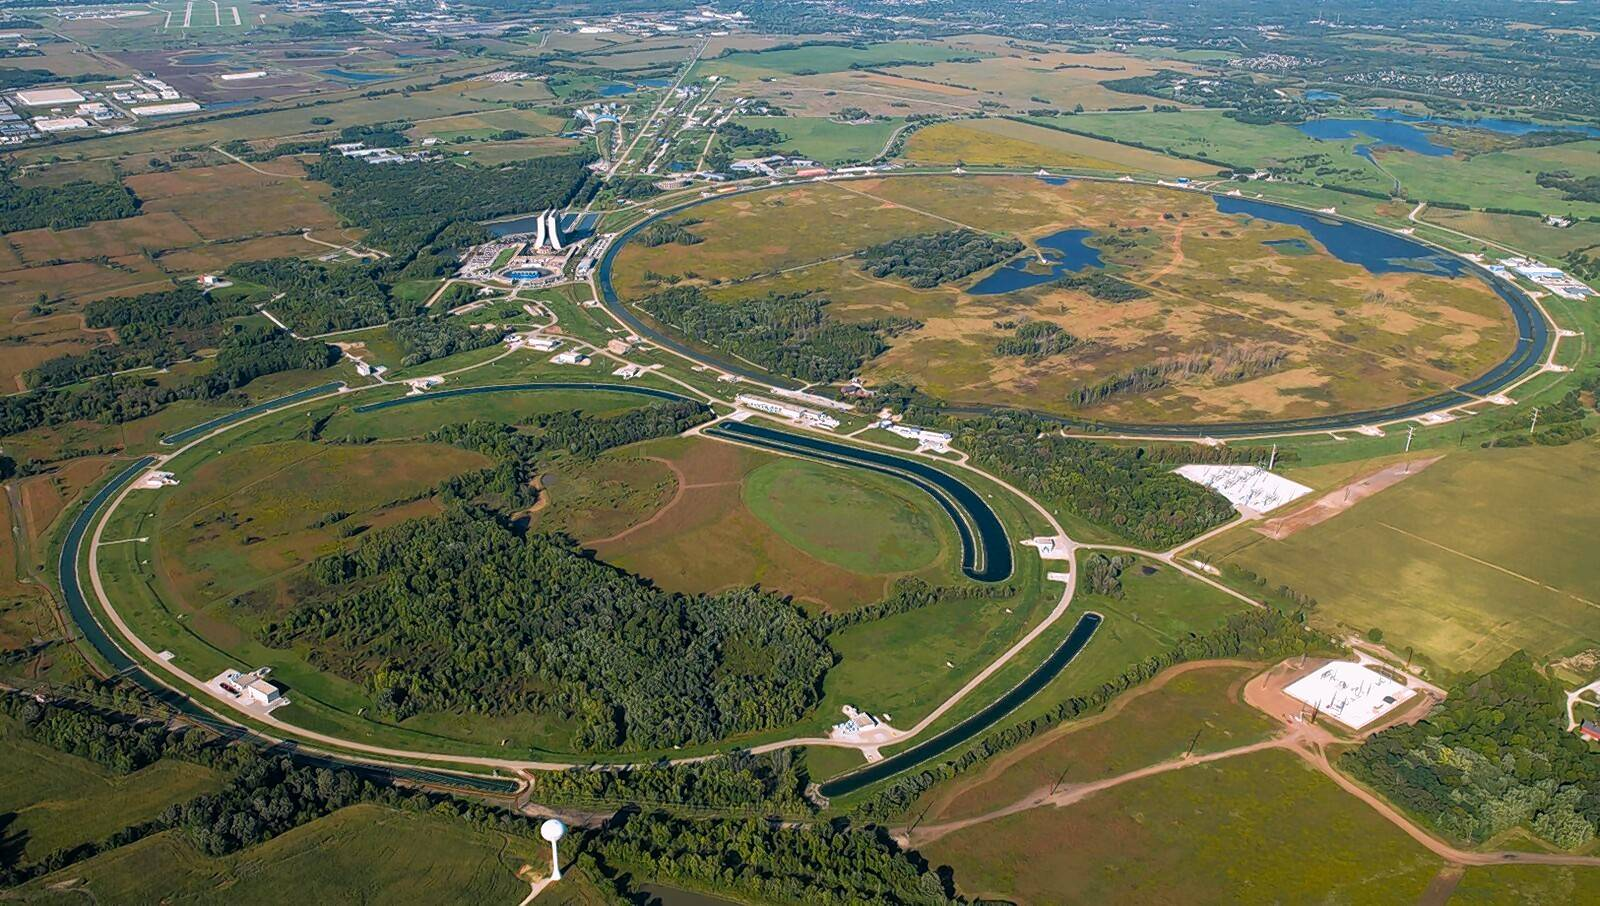 Planners looking to inspire wonder in their groups can organize a deep dive into the pioneering study of particle physics conducted at Fermilab.